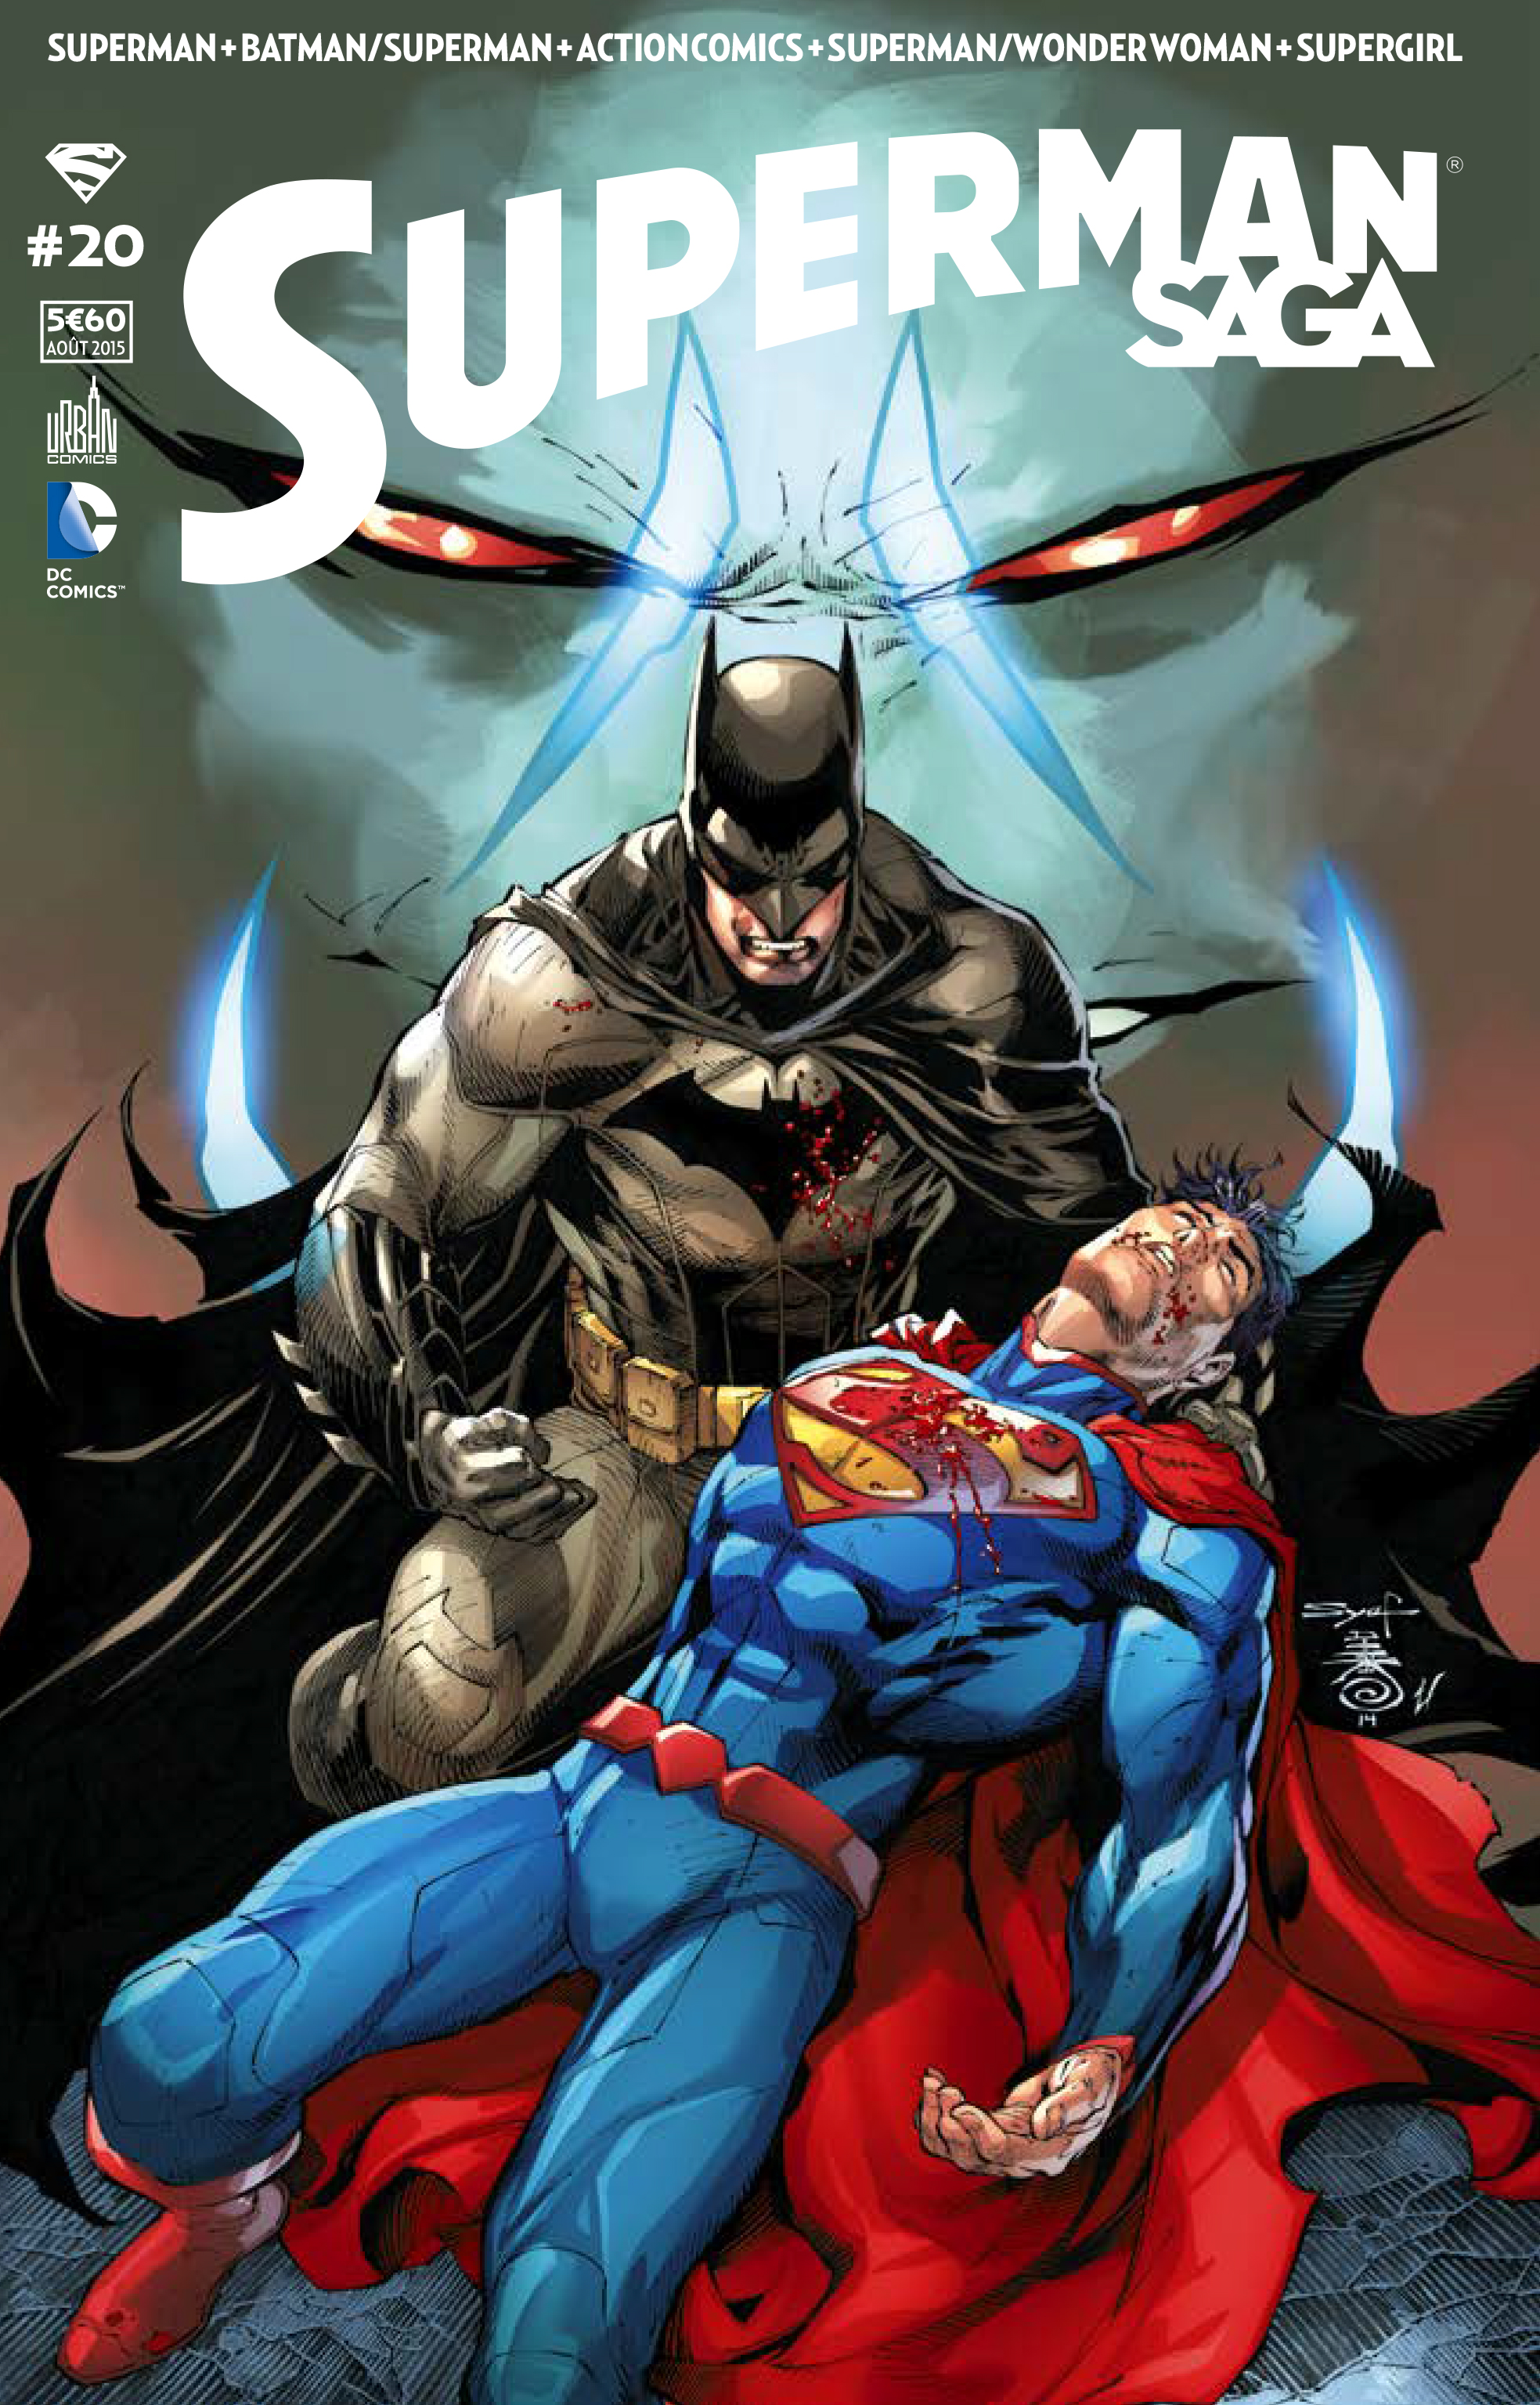 superman saga #20 critique